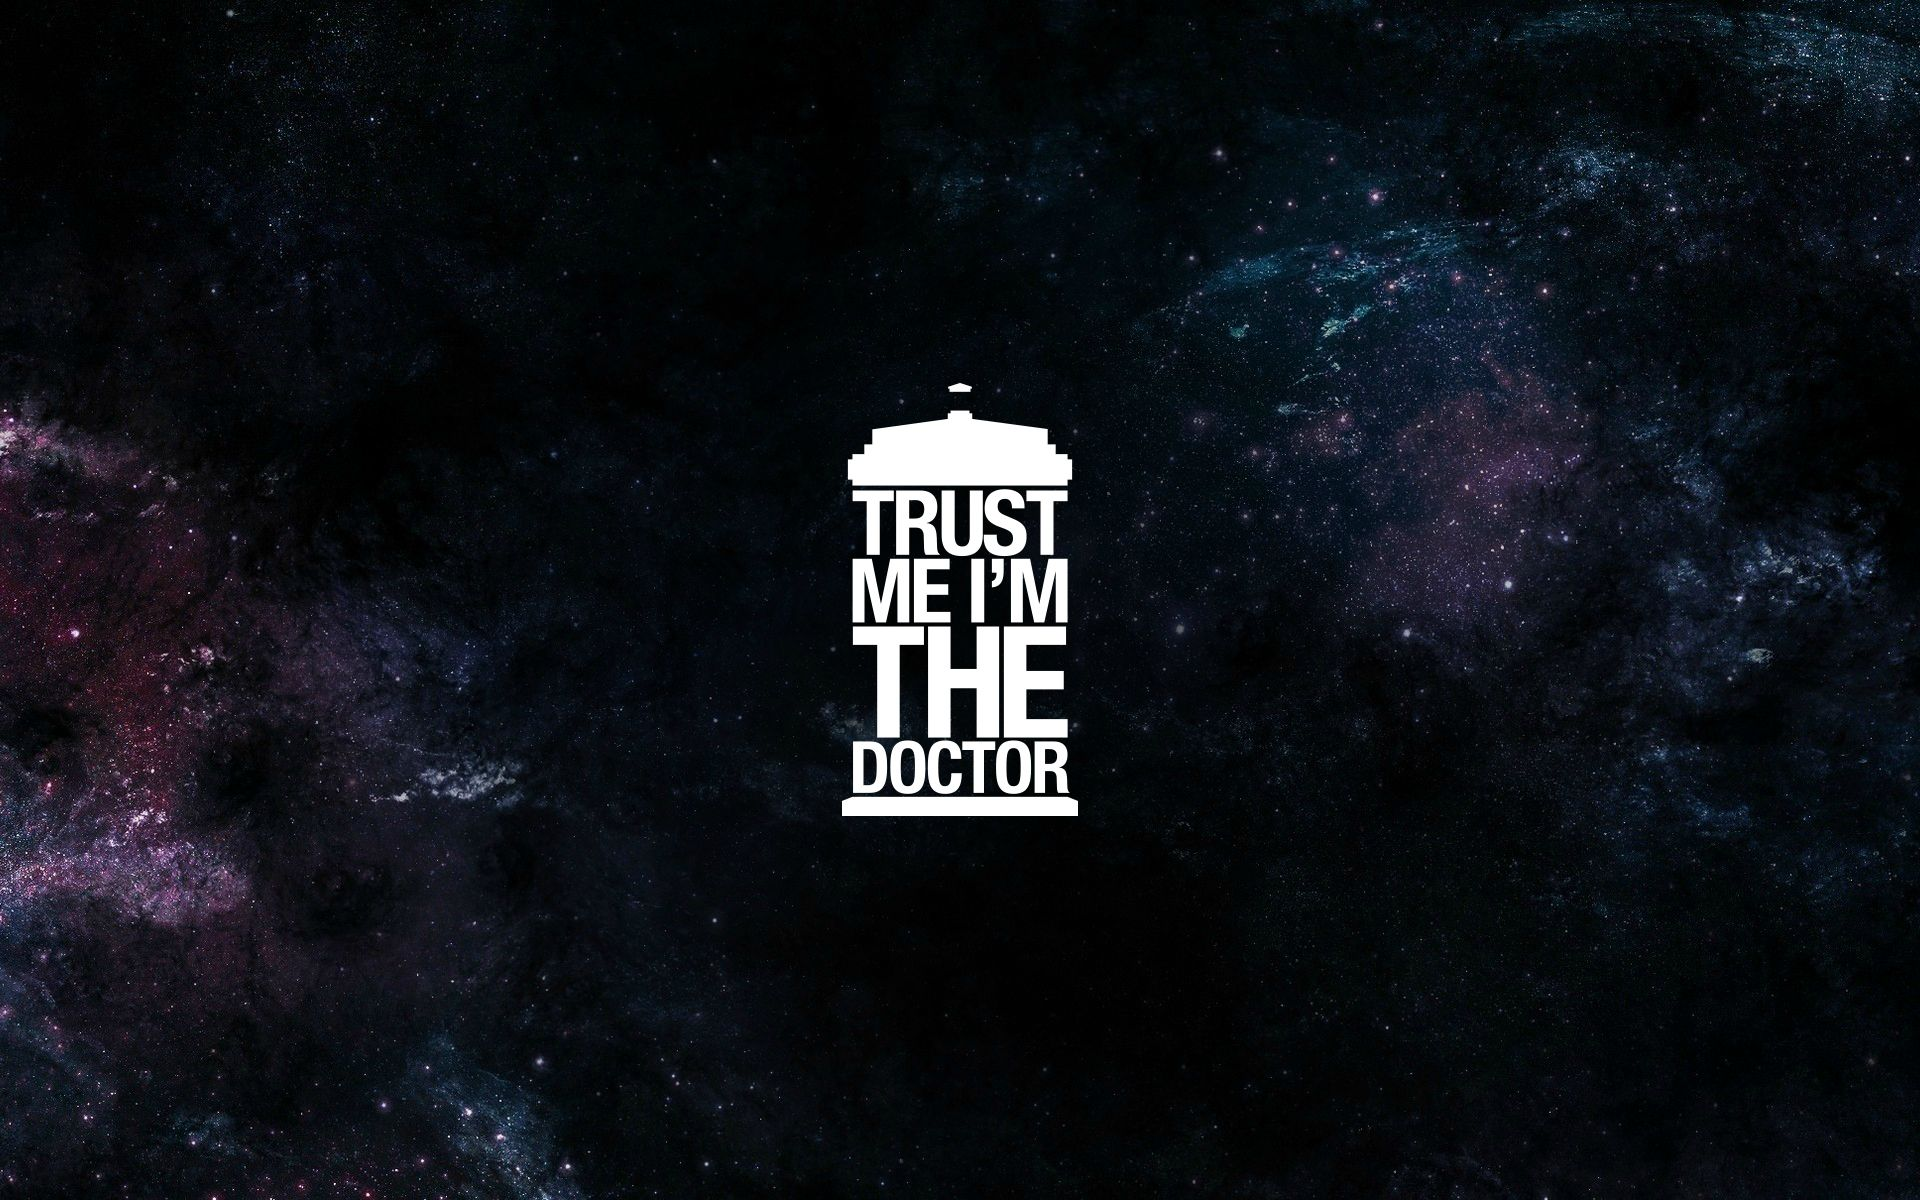 Doctor Who Hd Wallpapers Top Free Doctor Who Hd Backgrounds